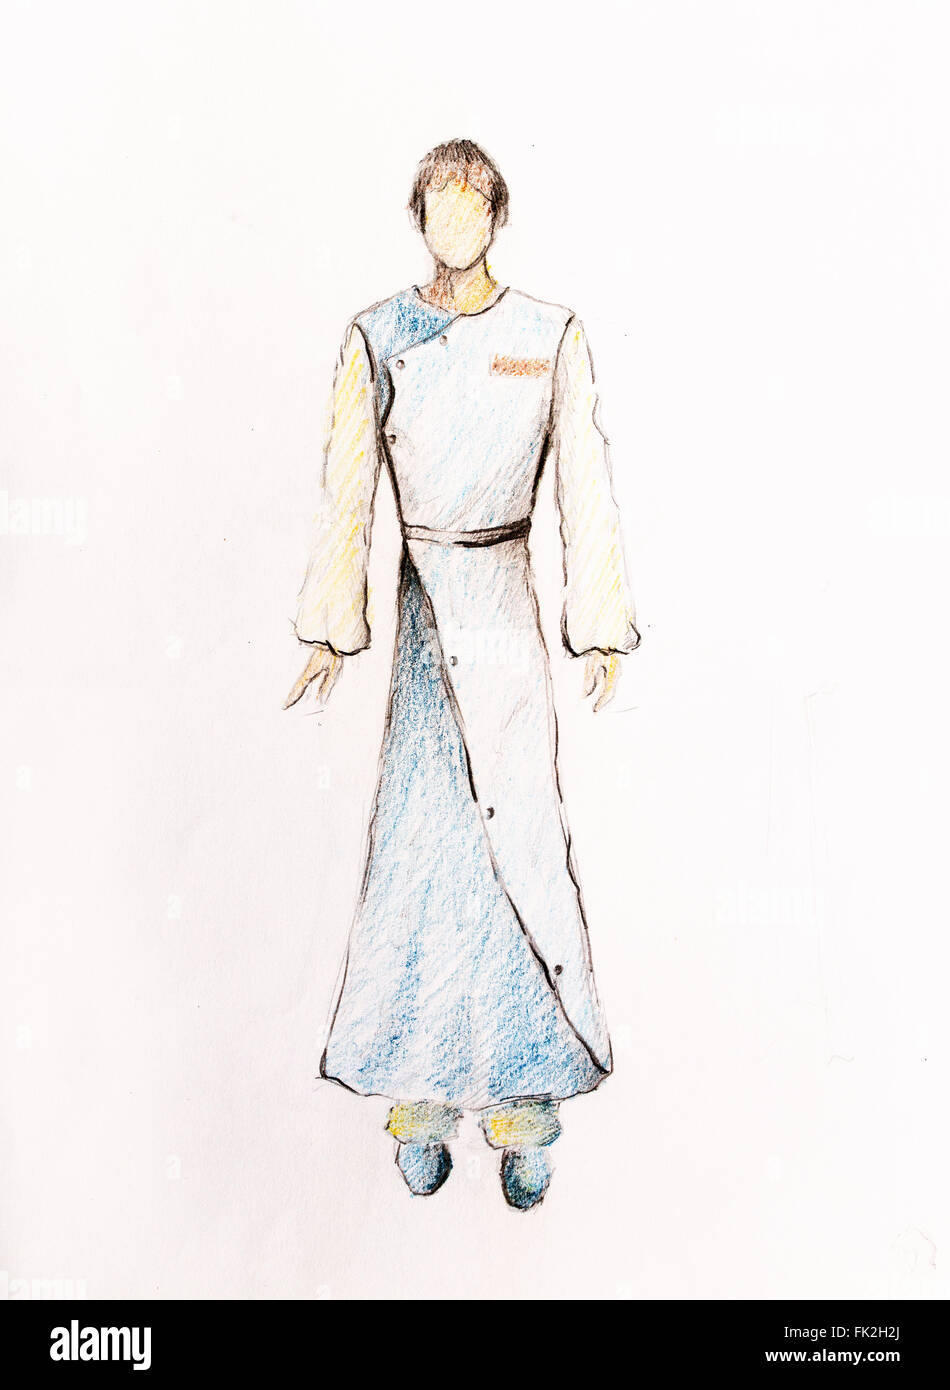 Drawing Fashion Male Clothes Color Pencil Sketch On Paper Stock Photo Alamy